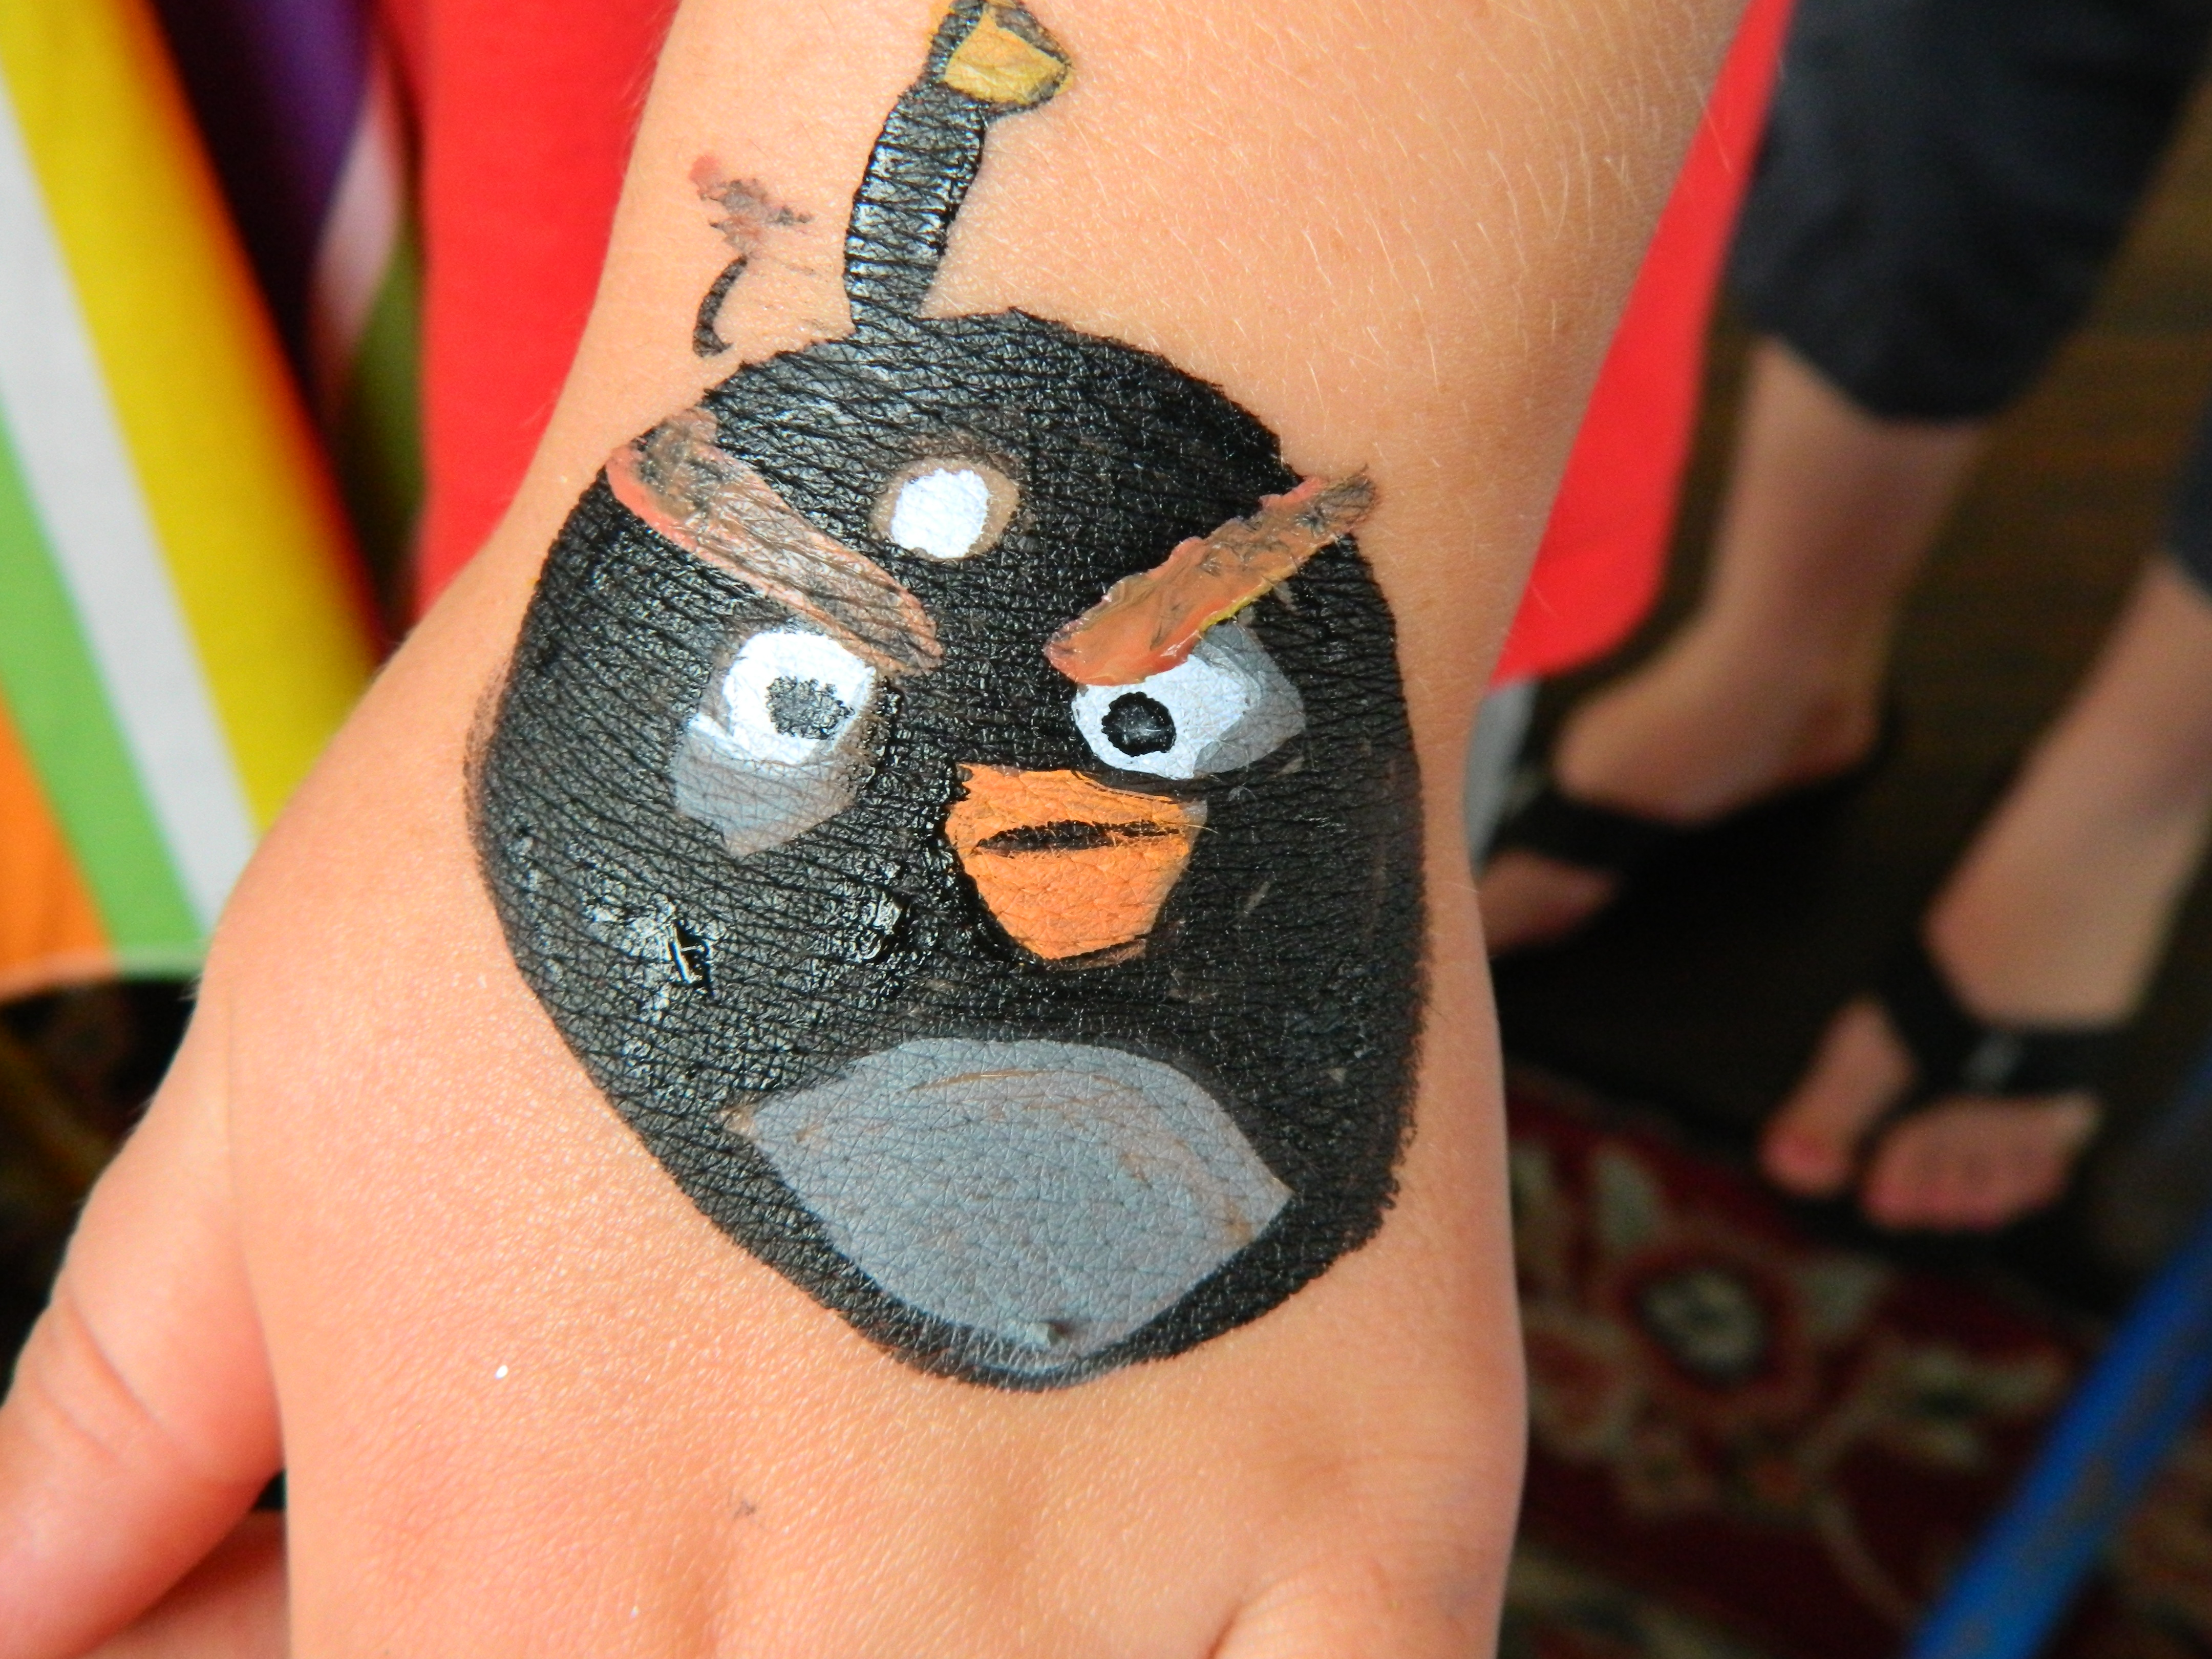 FACE PAINTING HOW-TO ARTICLES | Marc Kohler Art Services